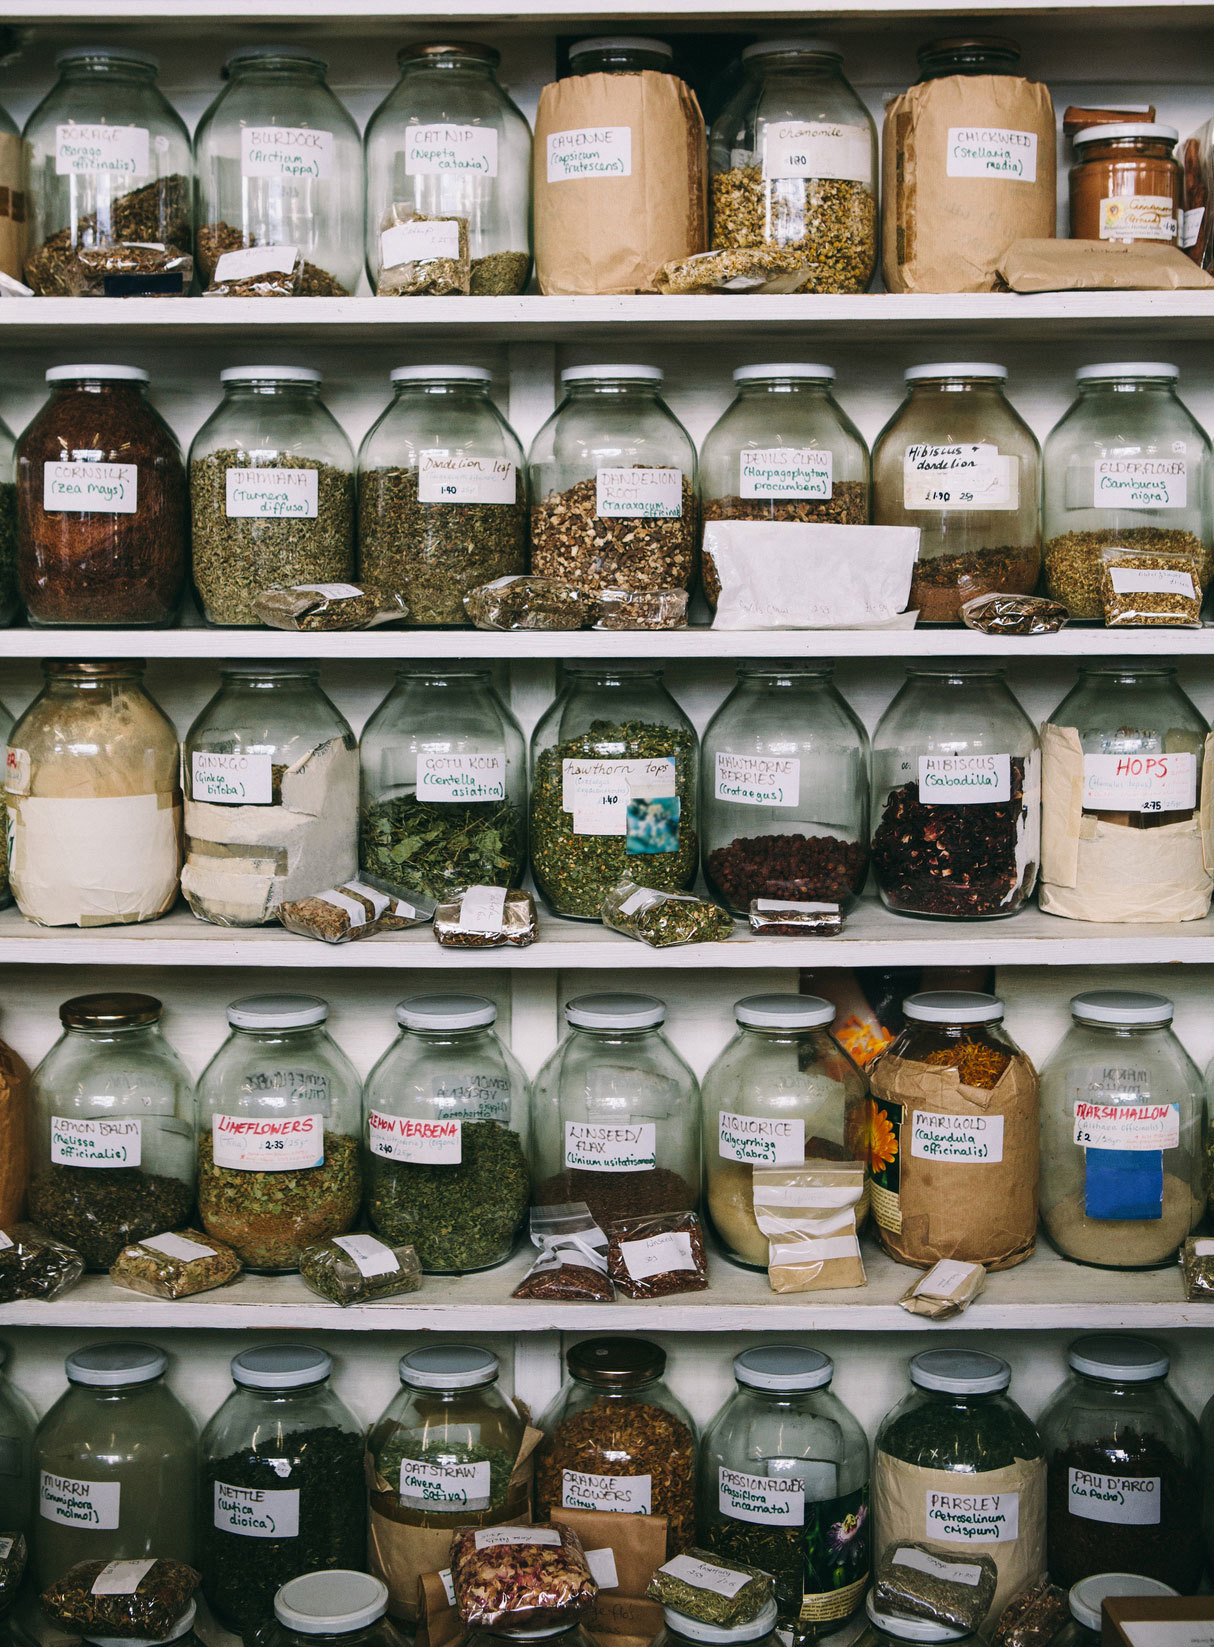 The Pros and Cons of Having an Herbal Abortion - VICE